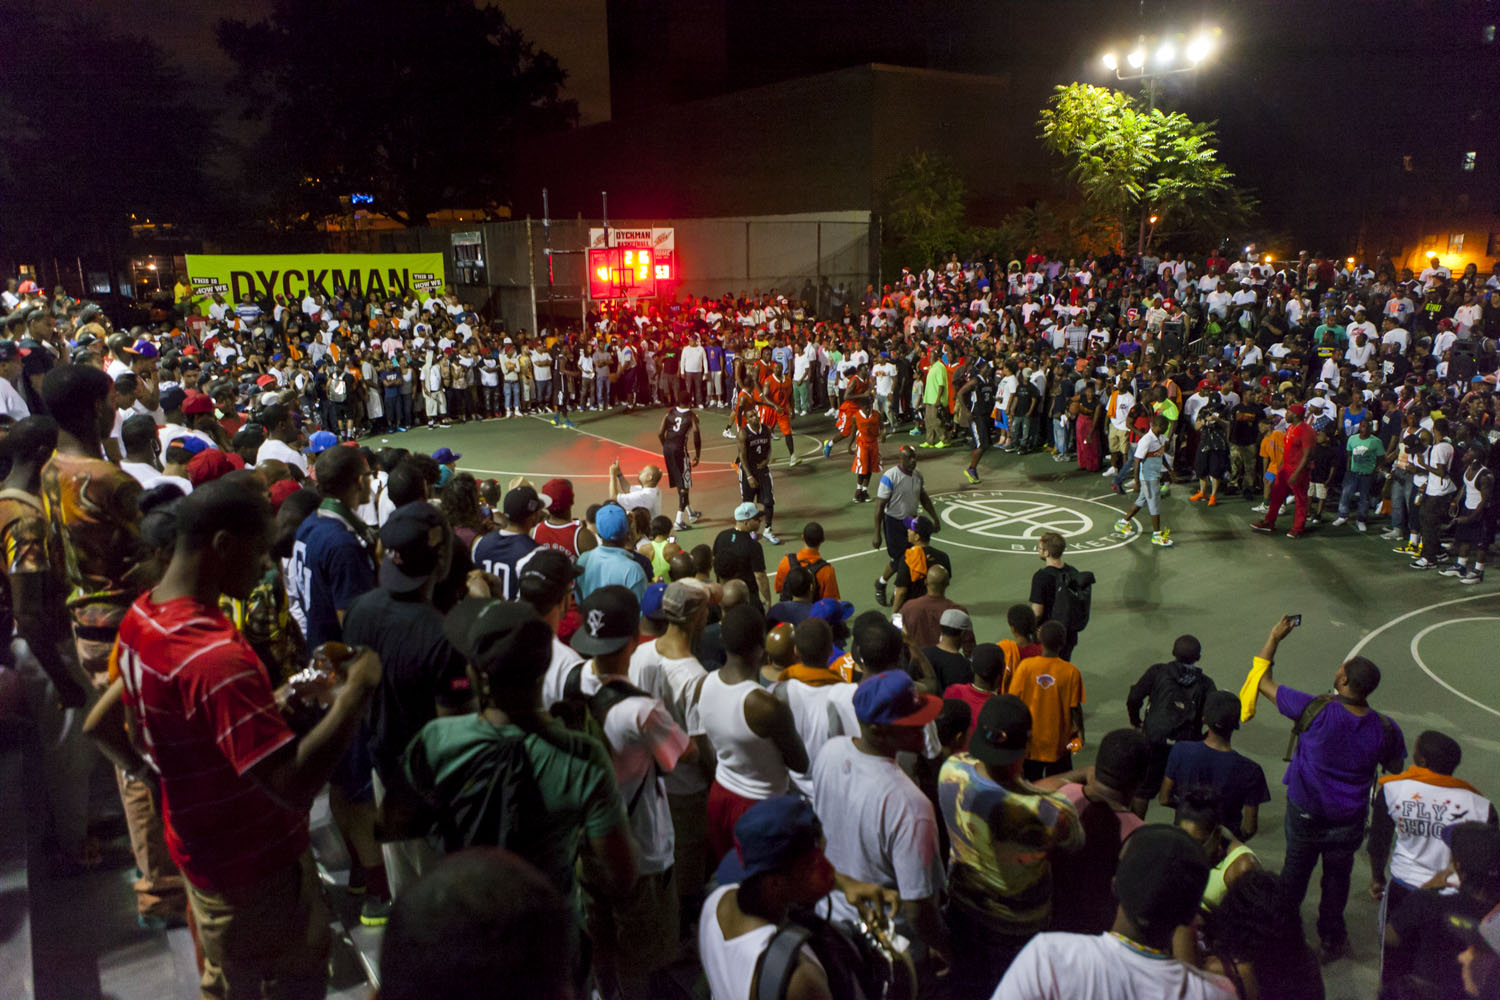 Dyckman Park was flooded with fans who simply could not miss the match up between Vampire Life and Skull Gang.